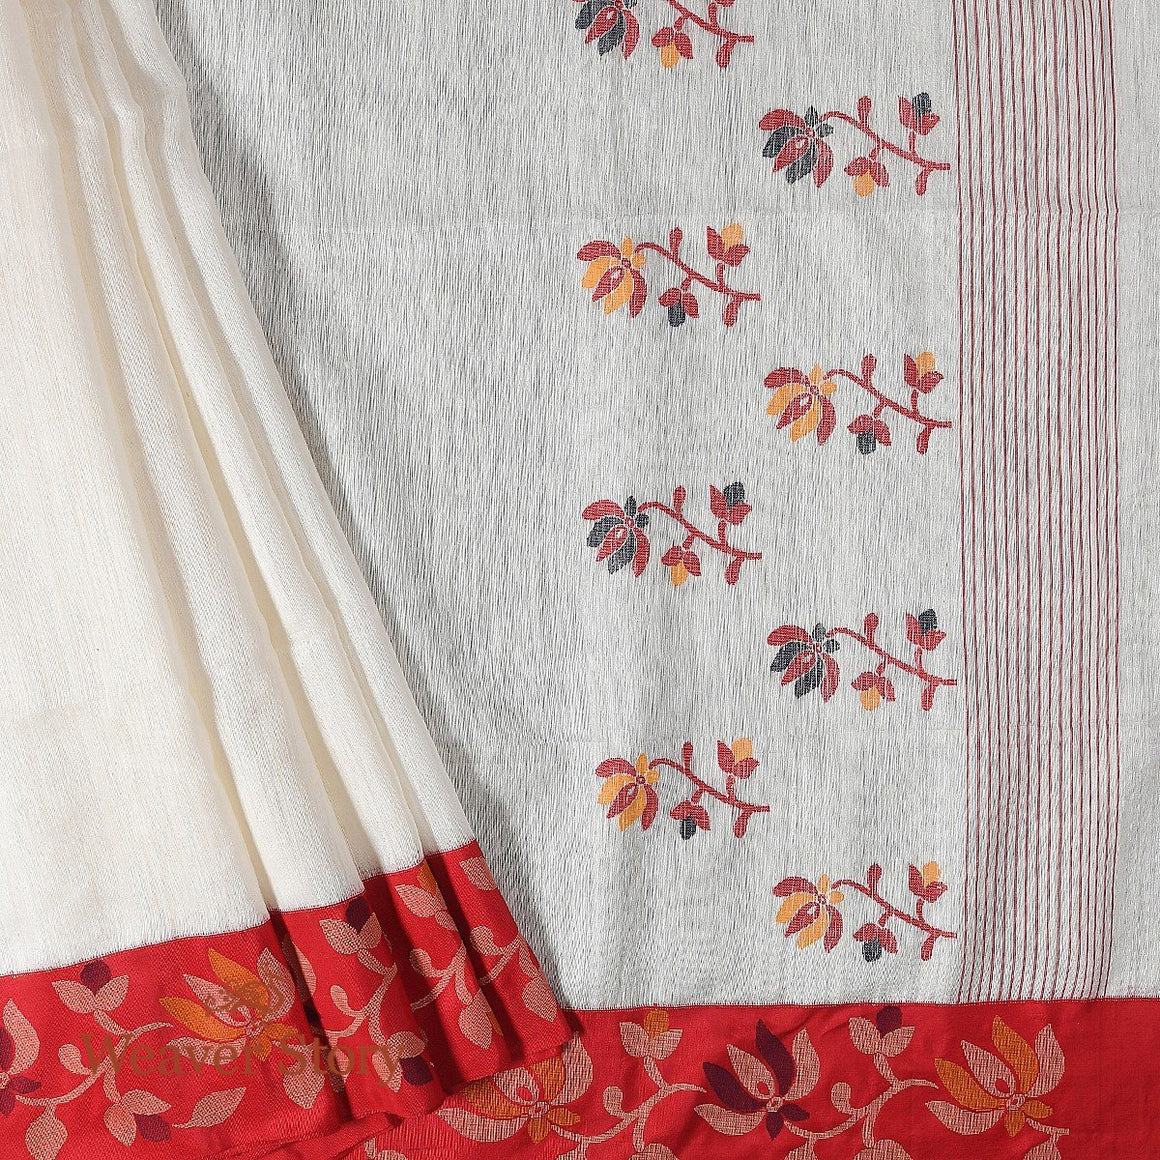 Handwoven Offwhite and Red Matka Silk Saree with Pure Silk Borders and Jamdani Weave